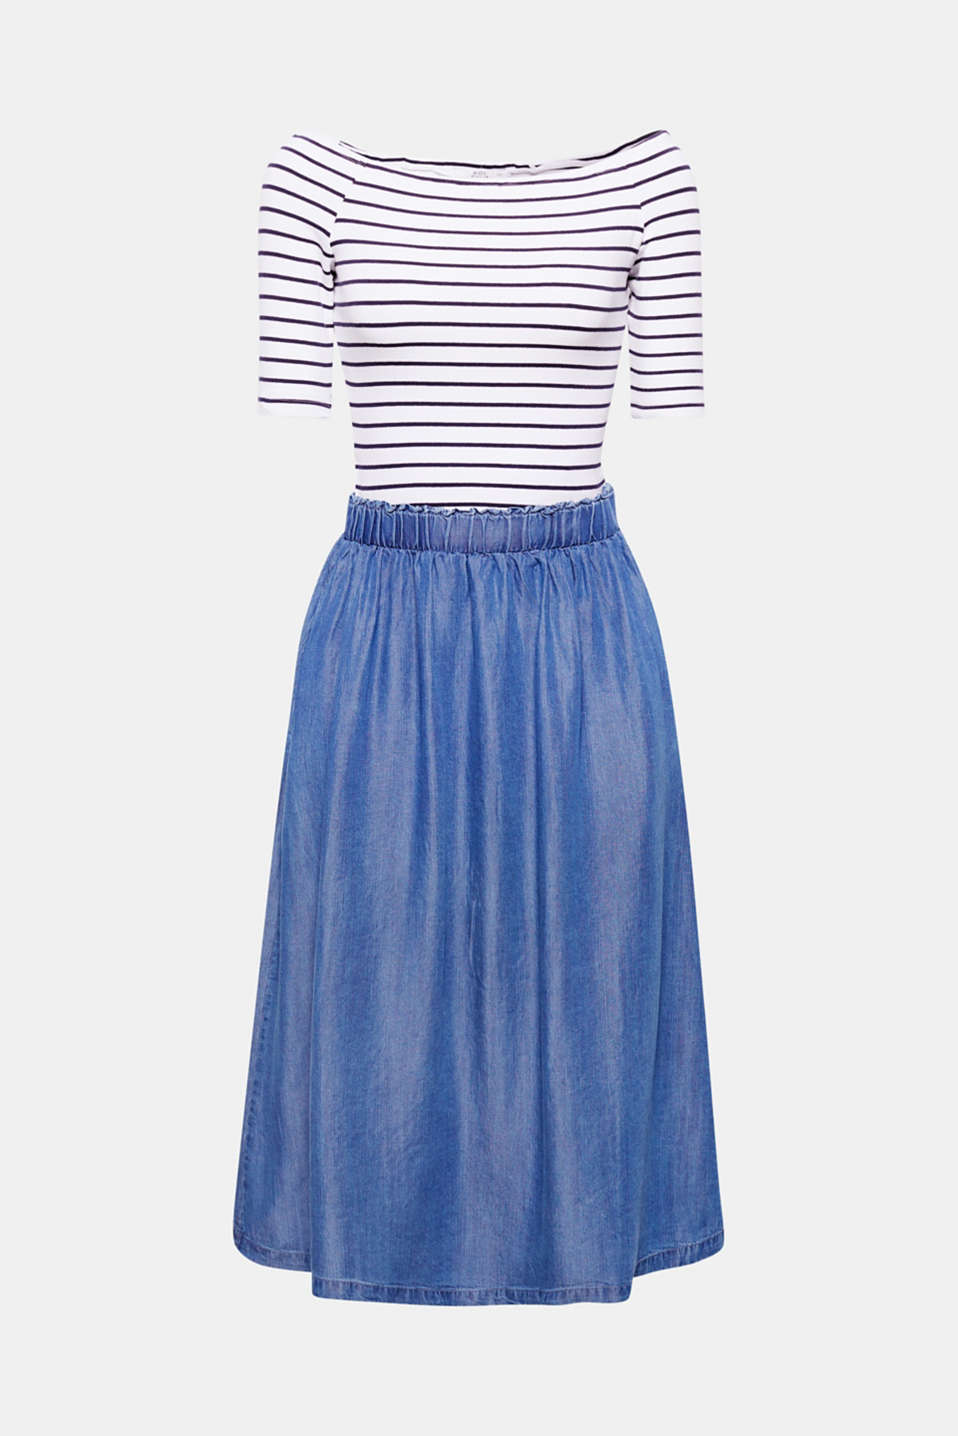 Unmistakable style: the mix of materials in striped jersey and a flowing denim look makes this dress a great head-turner!